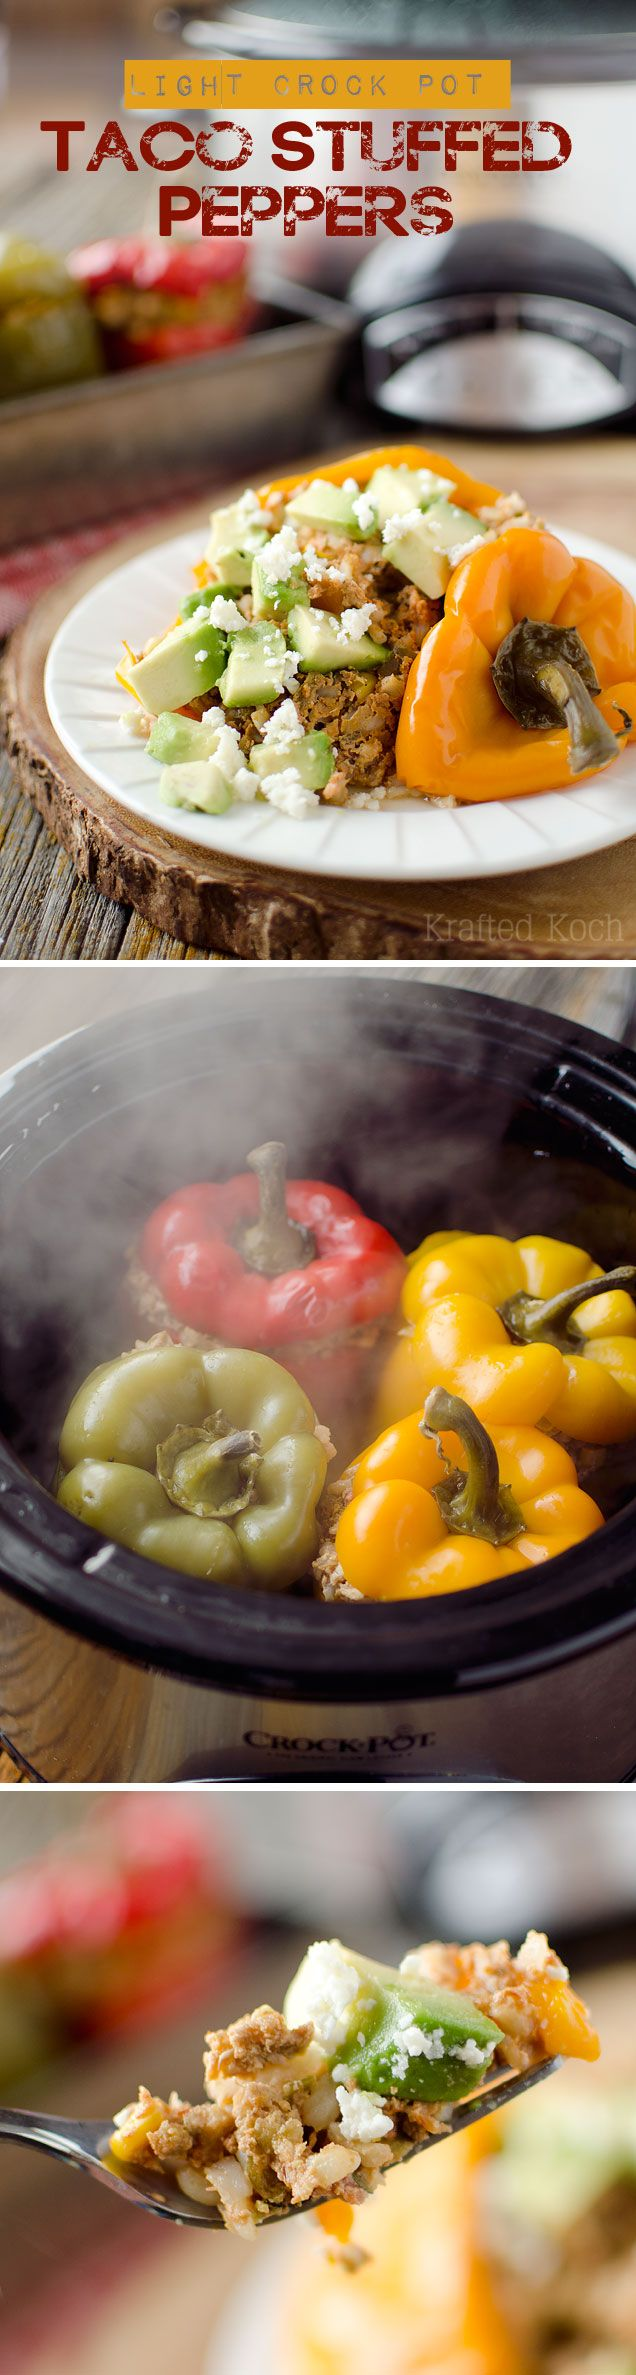 recipe: stove top stuffed peppers in tomato sauce [23]